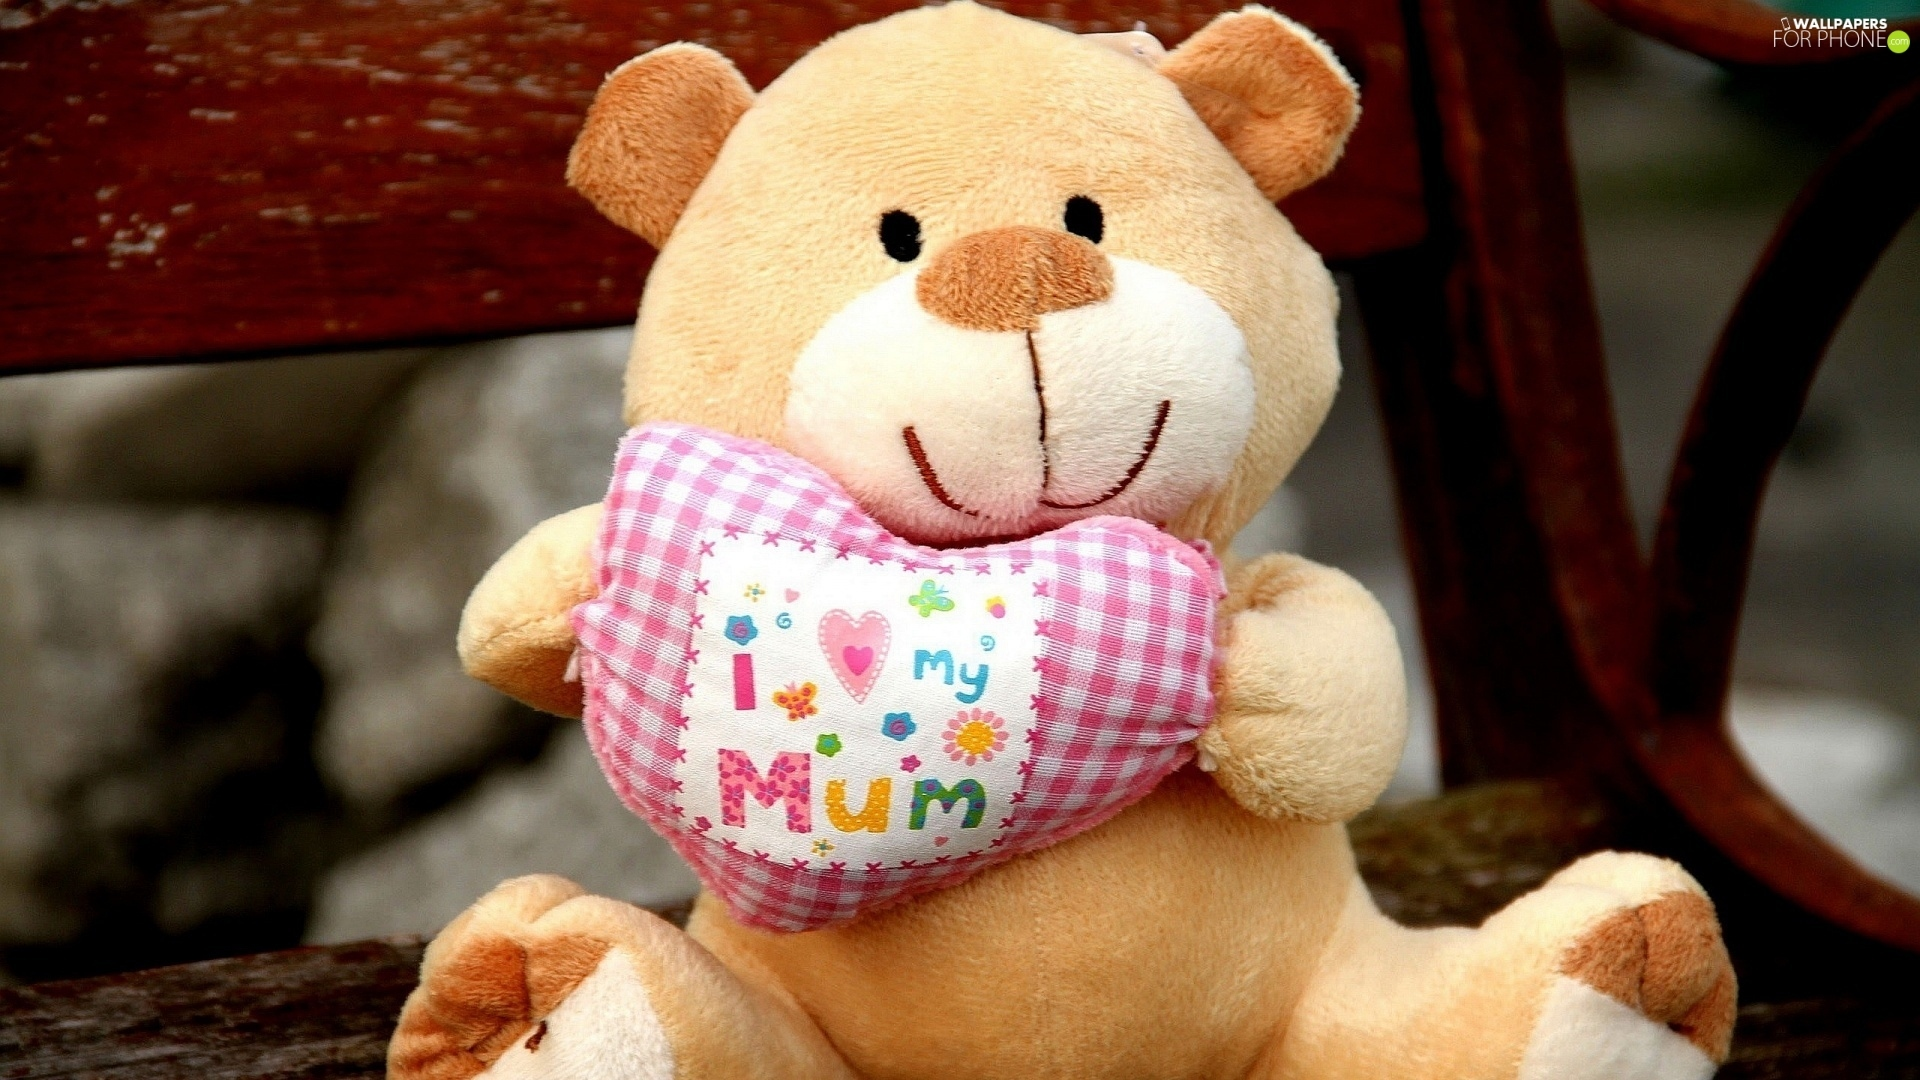 text, teddy bear, Heart teddybear